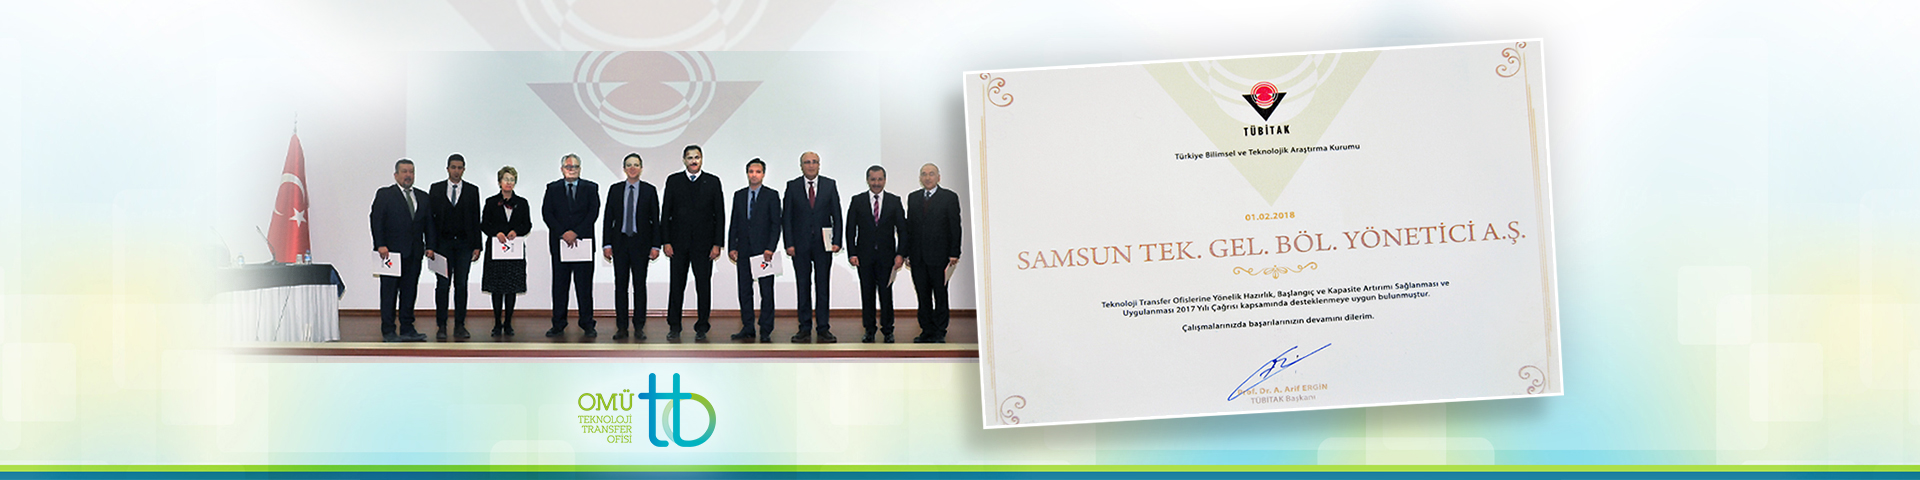 http://www.omu.edu.tr/sites/default/files/files/tubitak_awards_omu-tto_with_a_certificate_of_achievement_/tubitak-tto-slider.jpg